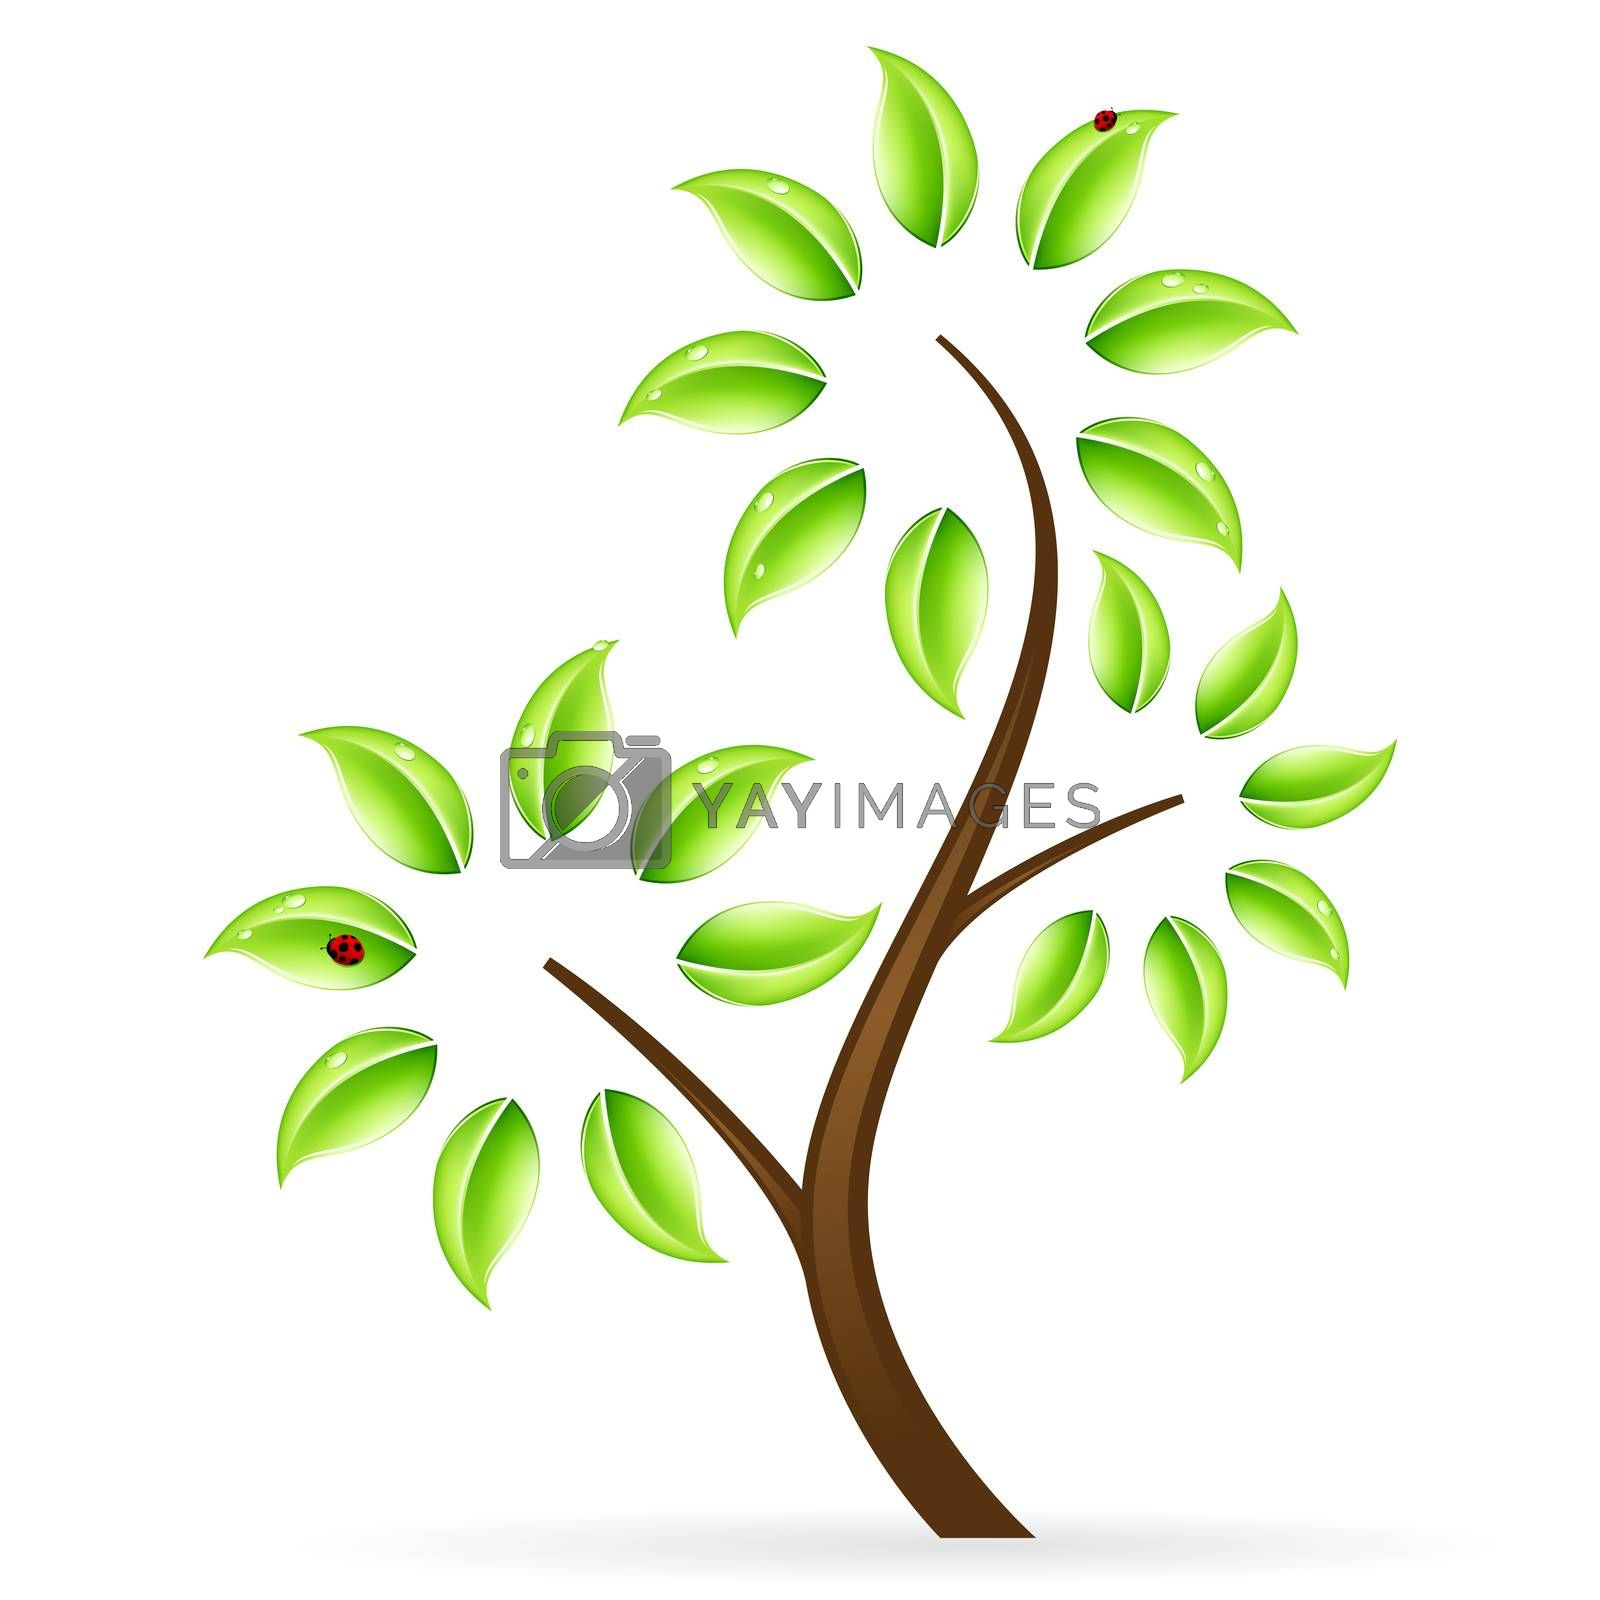 Abstract green tree icon by WaD